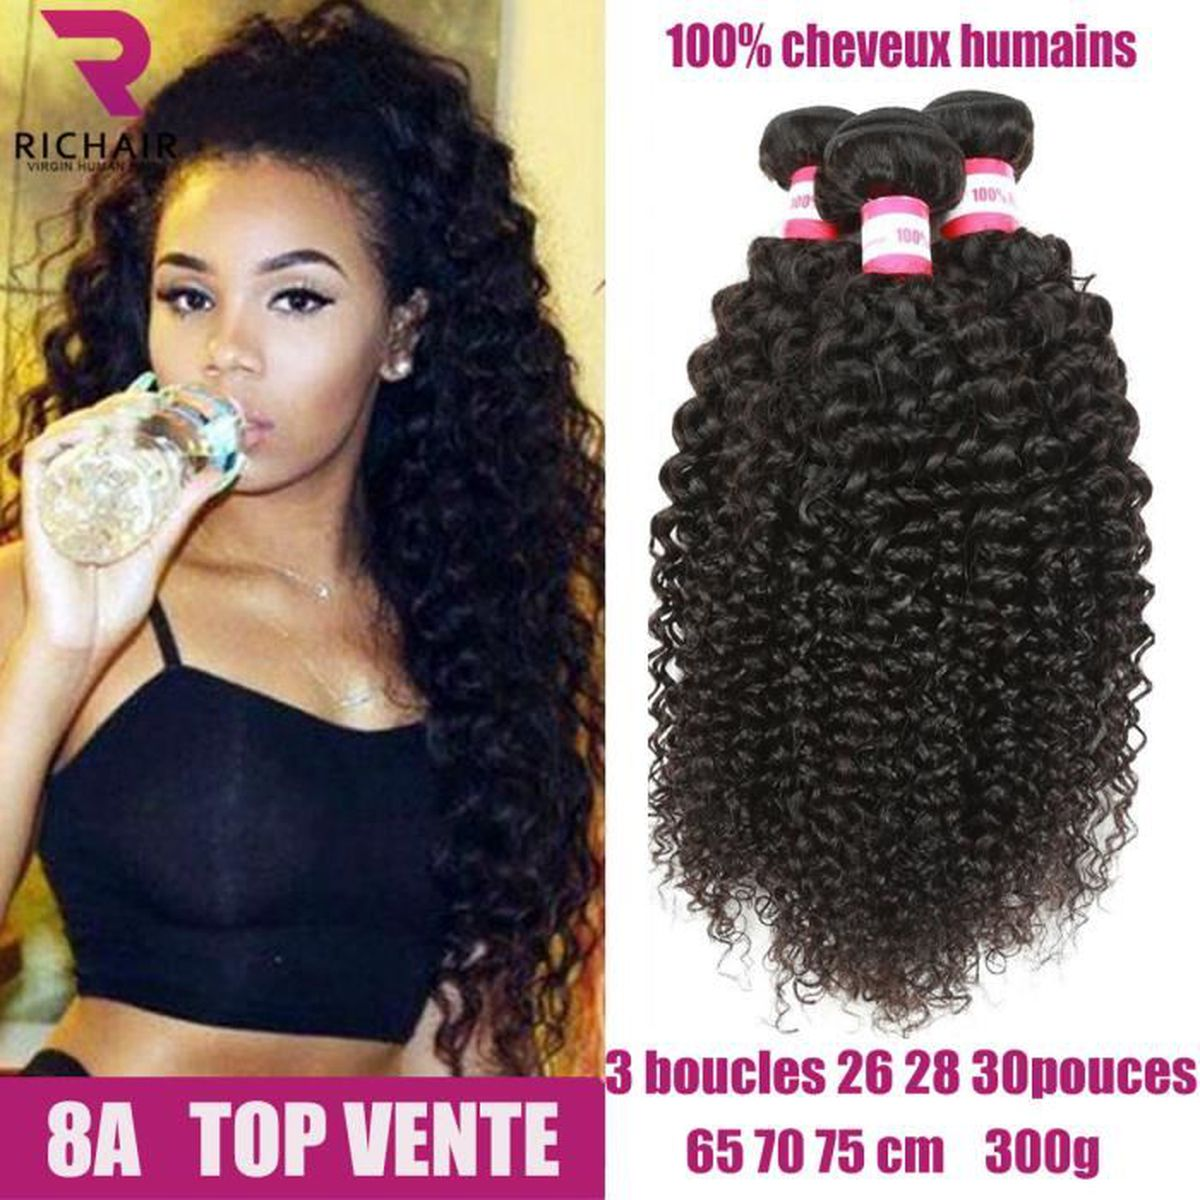 PERRUQUE - POSTICHE 3 tissage bresilien boucle en lot 8A virgin hair c